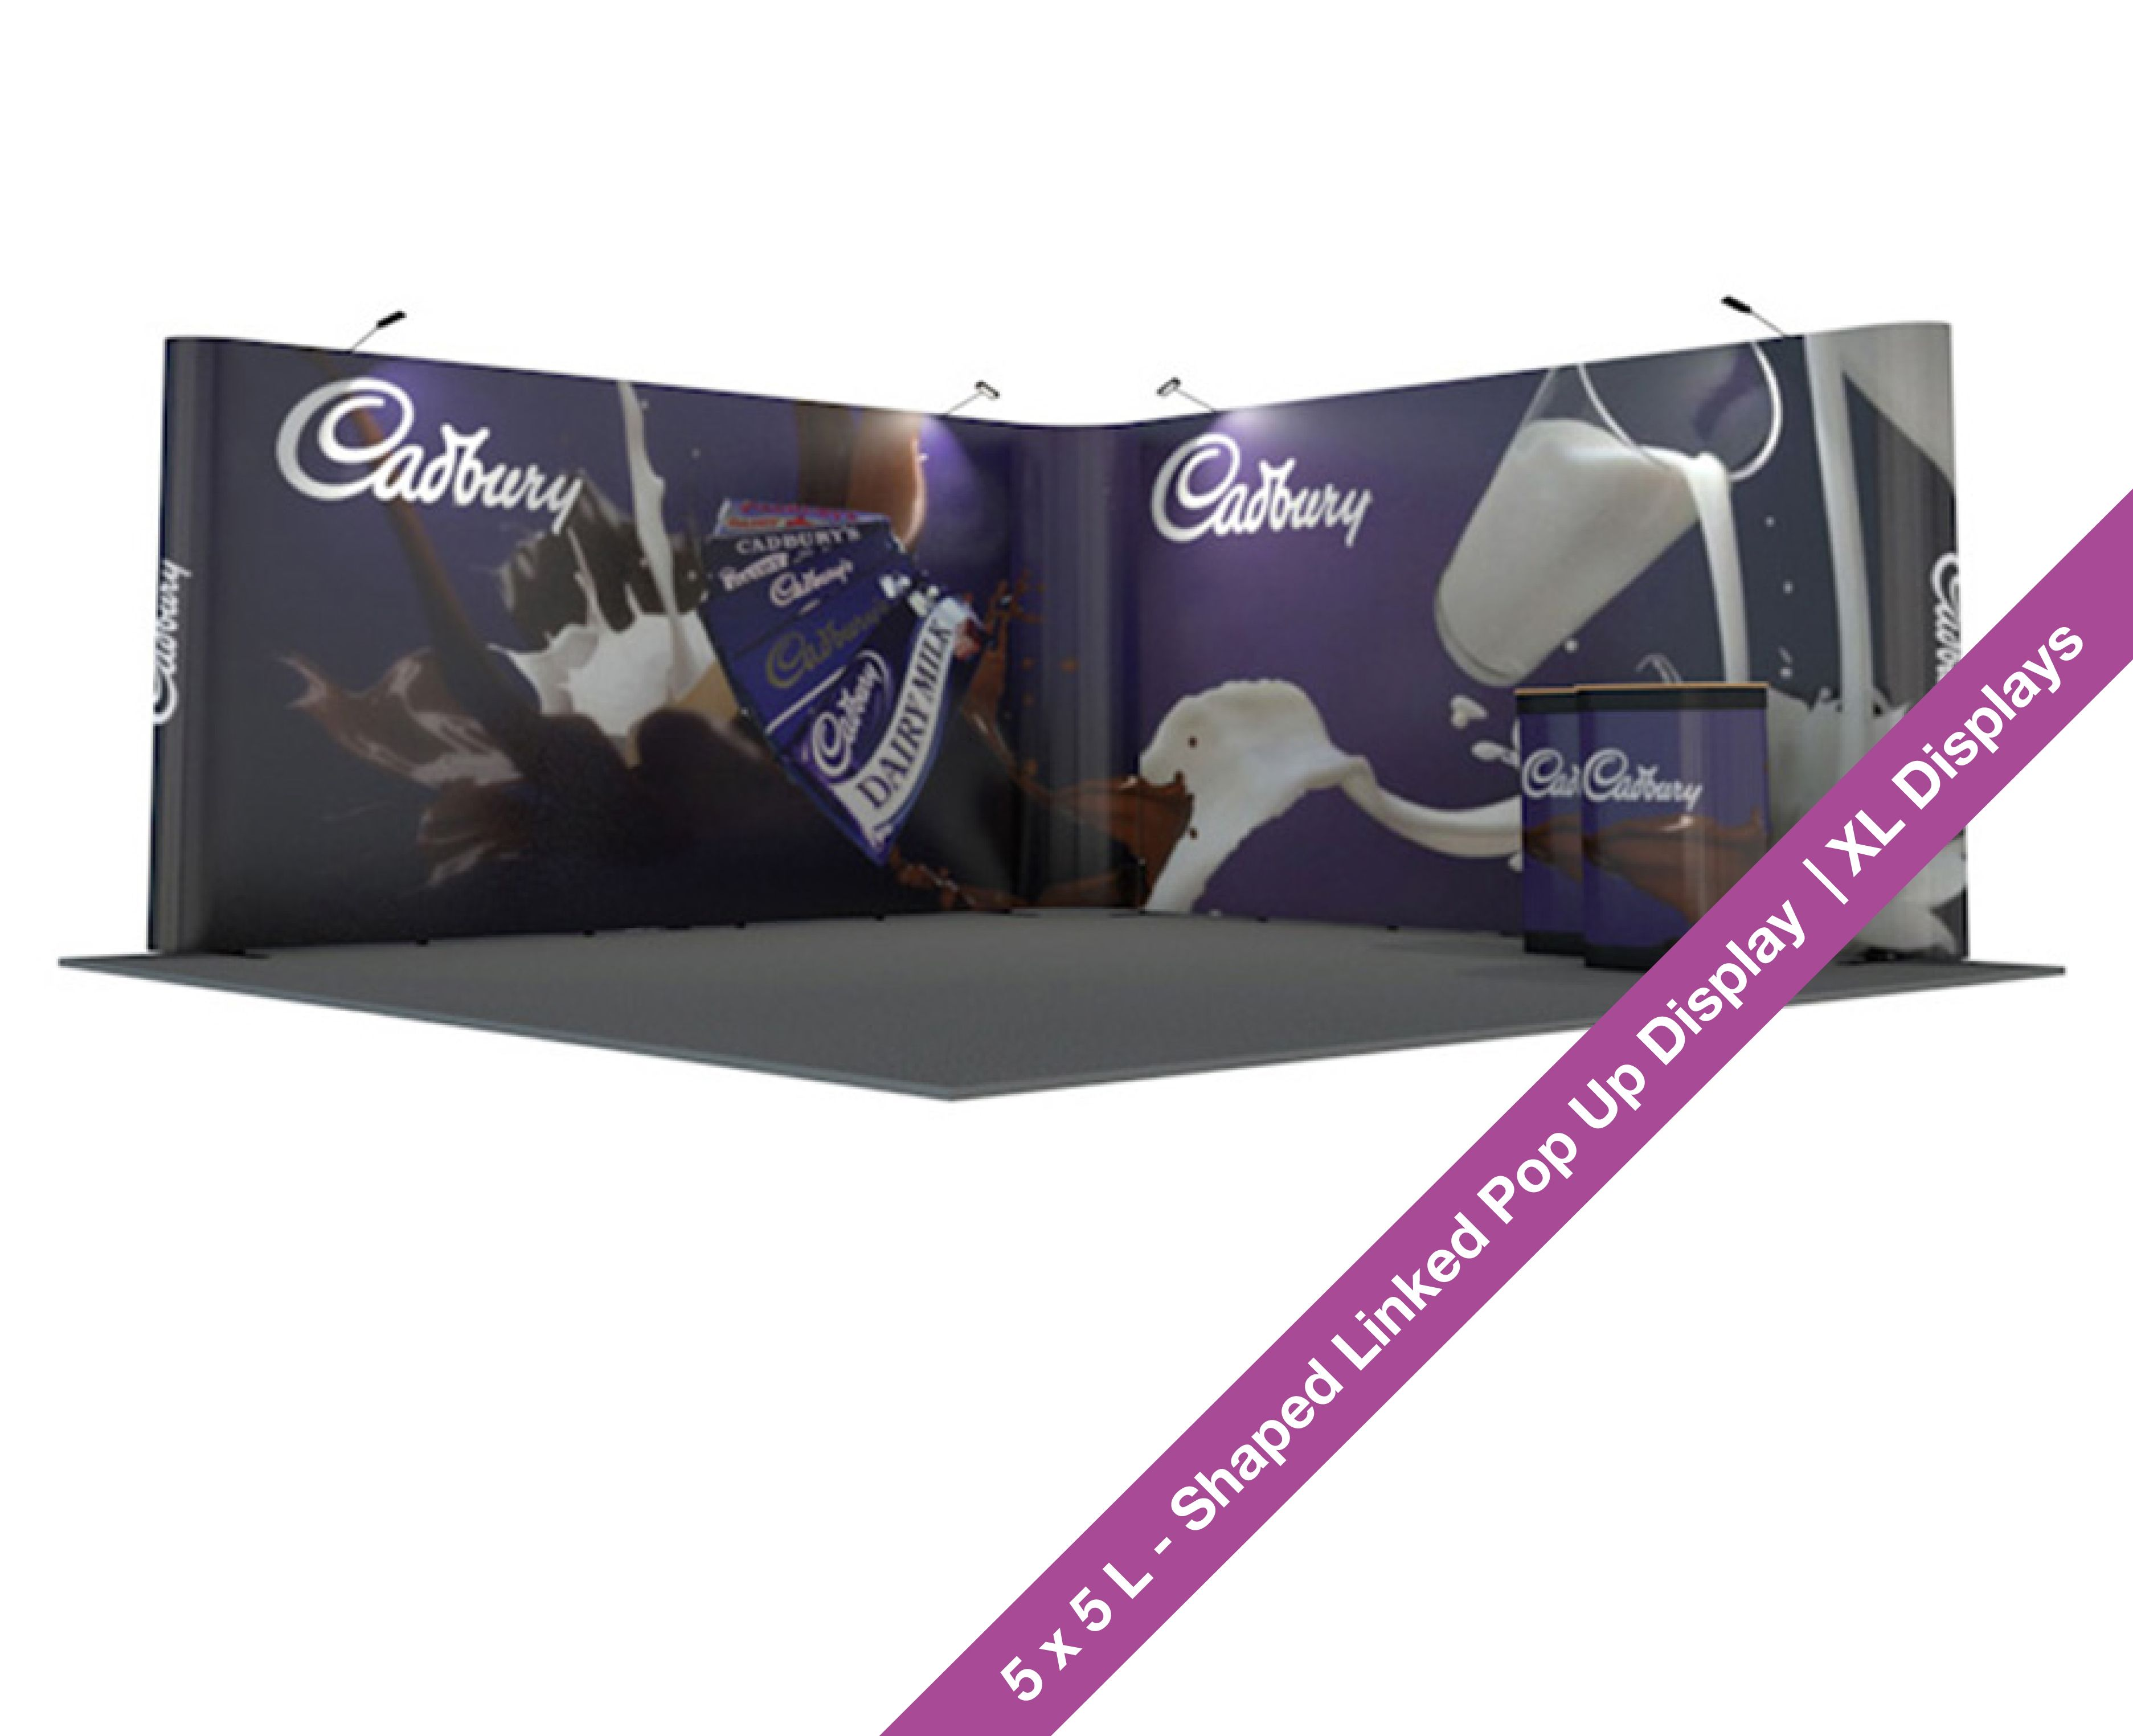 Exhibition Stand Cases : L shaped linked pop up stand 5m x 5m linked pop up stands pop up